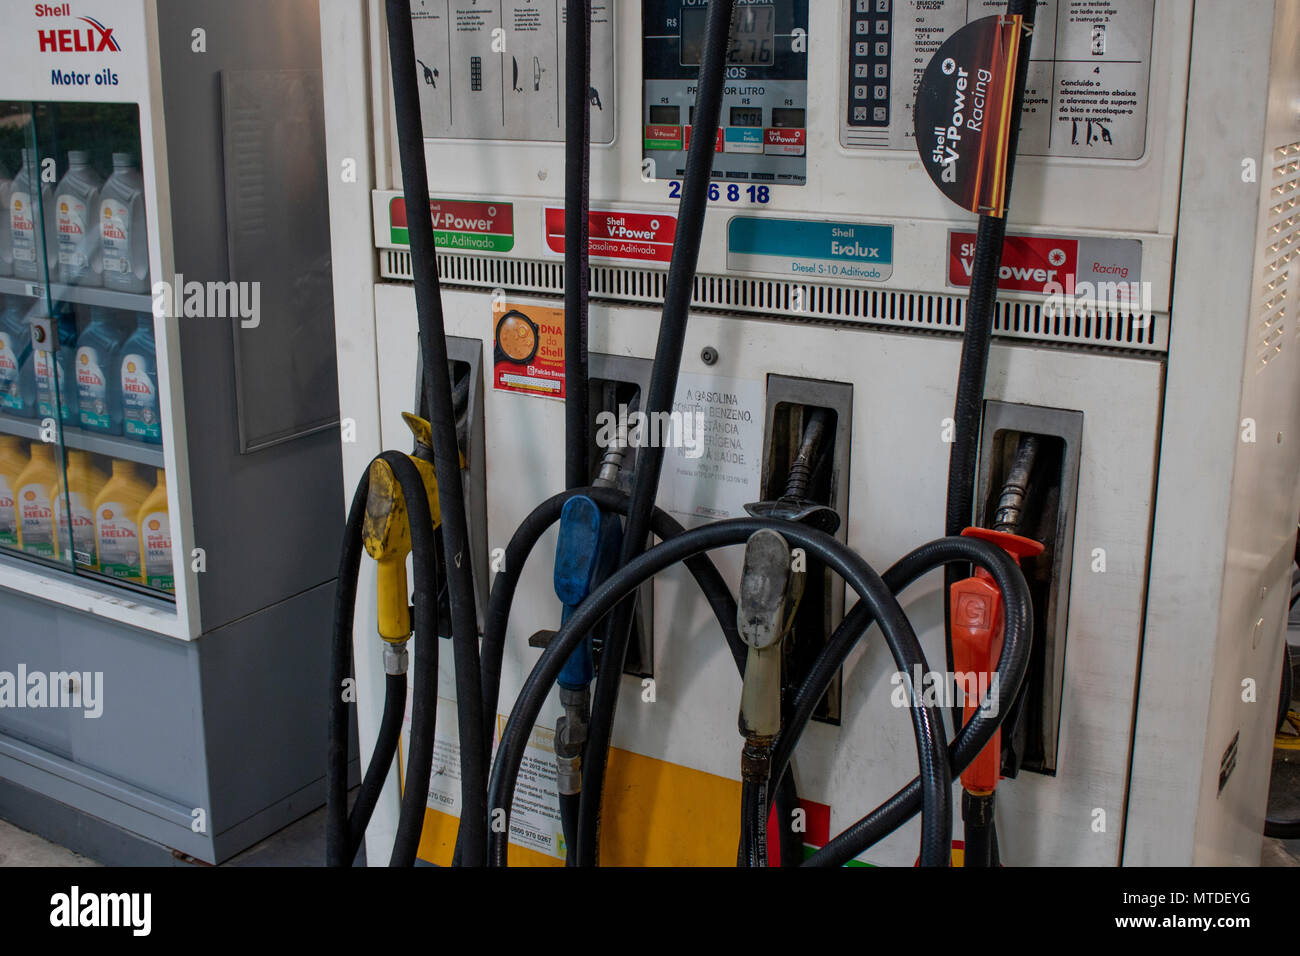 Sao Paulo, SP, Brazil. 29th May, 2018. People queue for fuel at a petrol station in São Paulo, on May 29 2018 on the nine day of a strike to protest rising fuel costs in Brazil. A truckers' strike paralyzing fuel and food deliveries across Brazil entered an eighth day Monday but with hopes of relief after unpopular President Michel Temer caved in to the strikers' key demand Credit: Alf Ribeiro/Alamy Live News Stock Photo